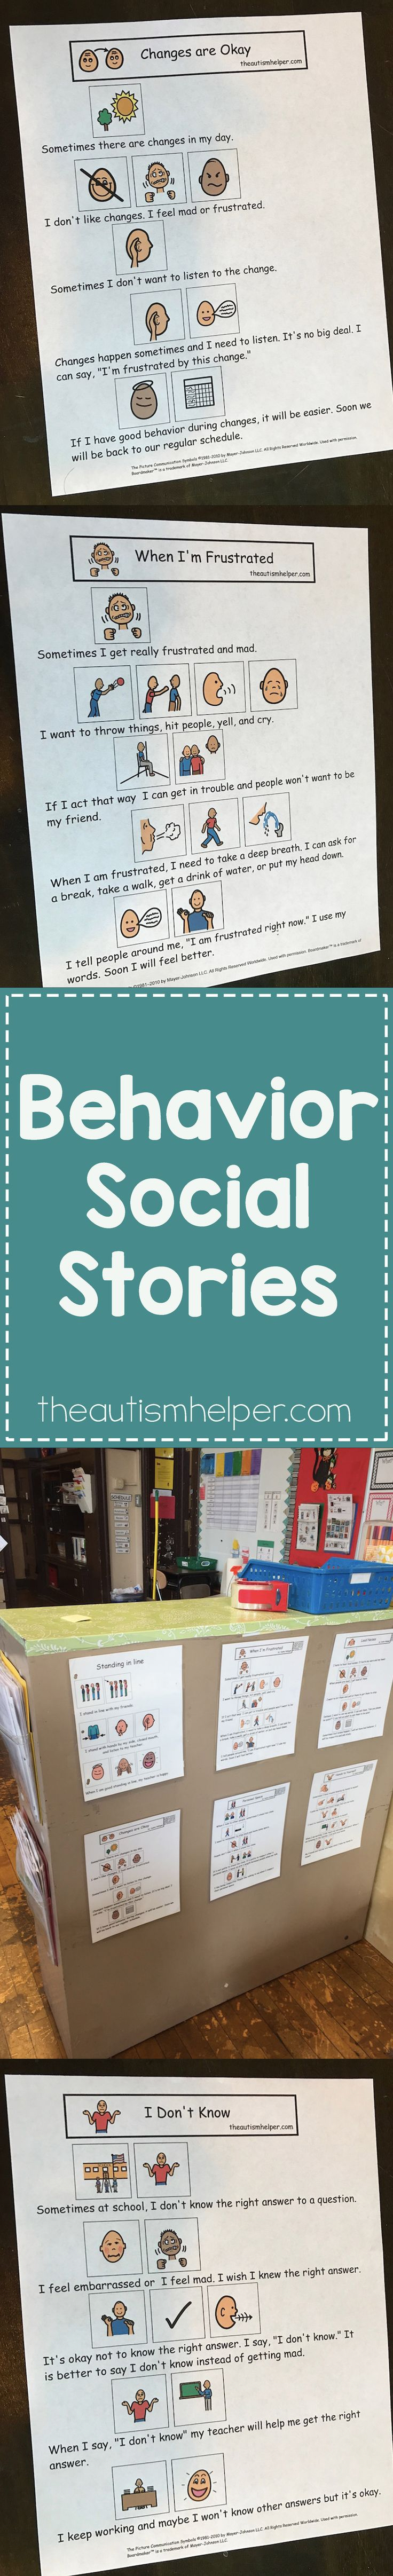 Follow along with the blog for helpful tips for using social stories to help reduce problem behaviors! From theautismhelper.com #theautismhelper